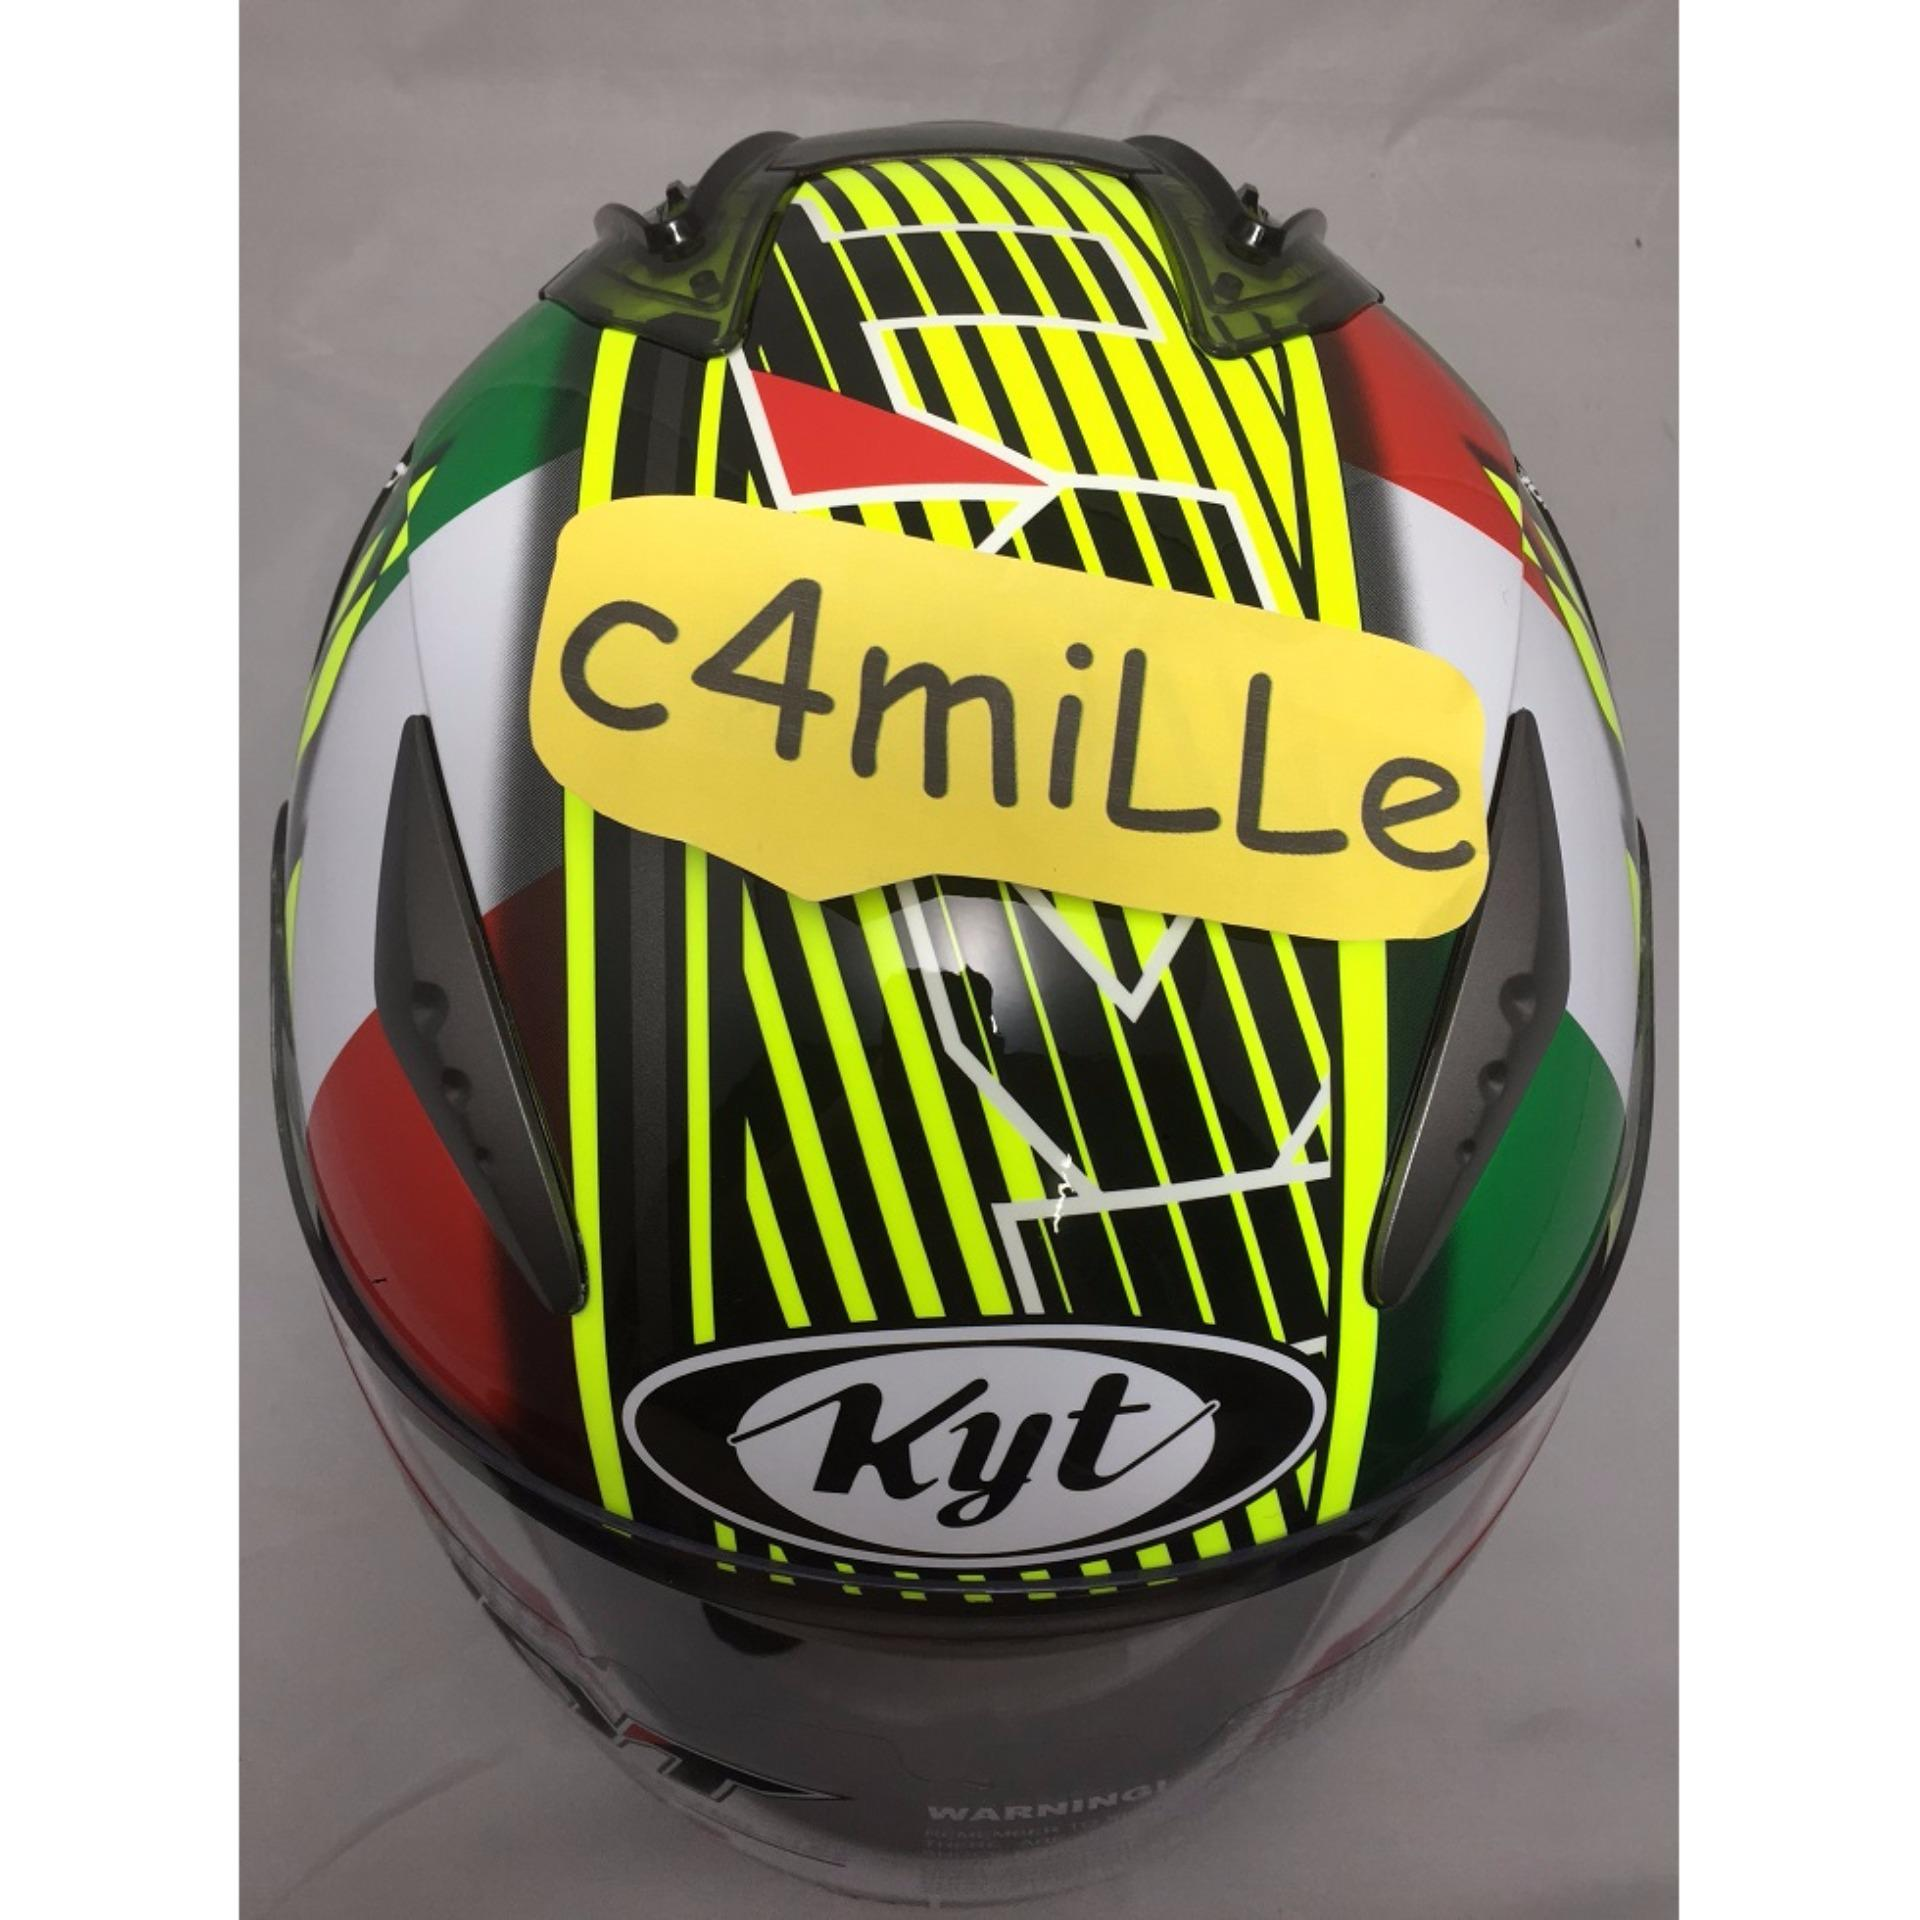 Helm Kyt R10 Philip Island Gp Rc Circuit Yellow Fluo Green Blue Full Race Aqua Marine Flat Visor Face Super Source